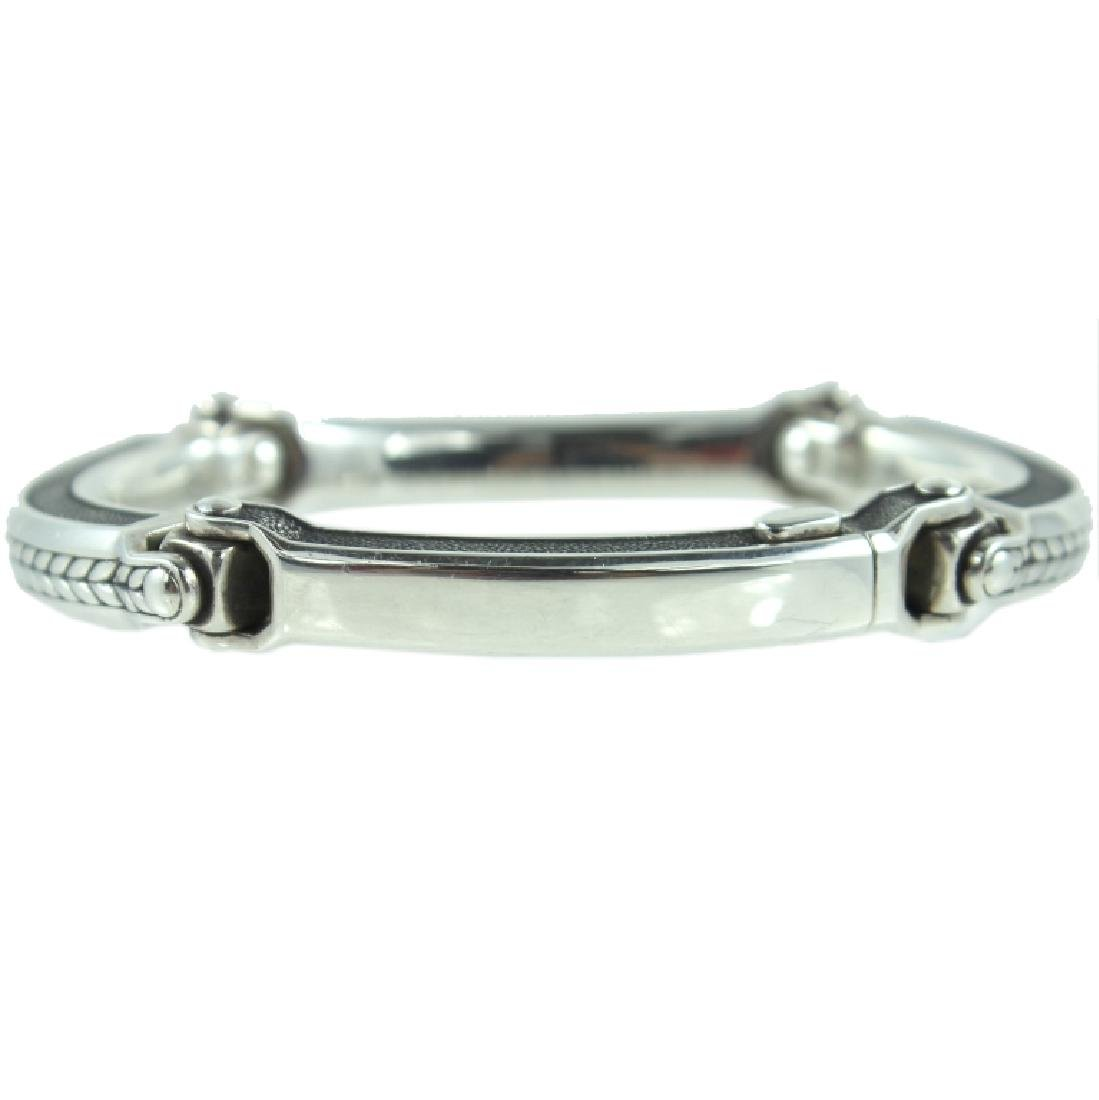 Mens David Yurman 4 Link Bracelet.